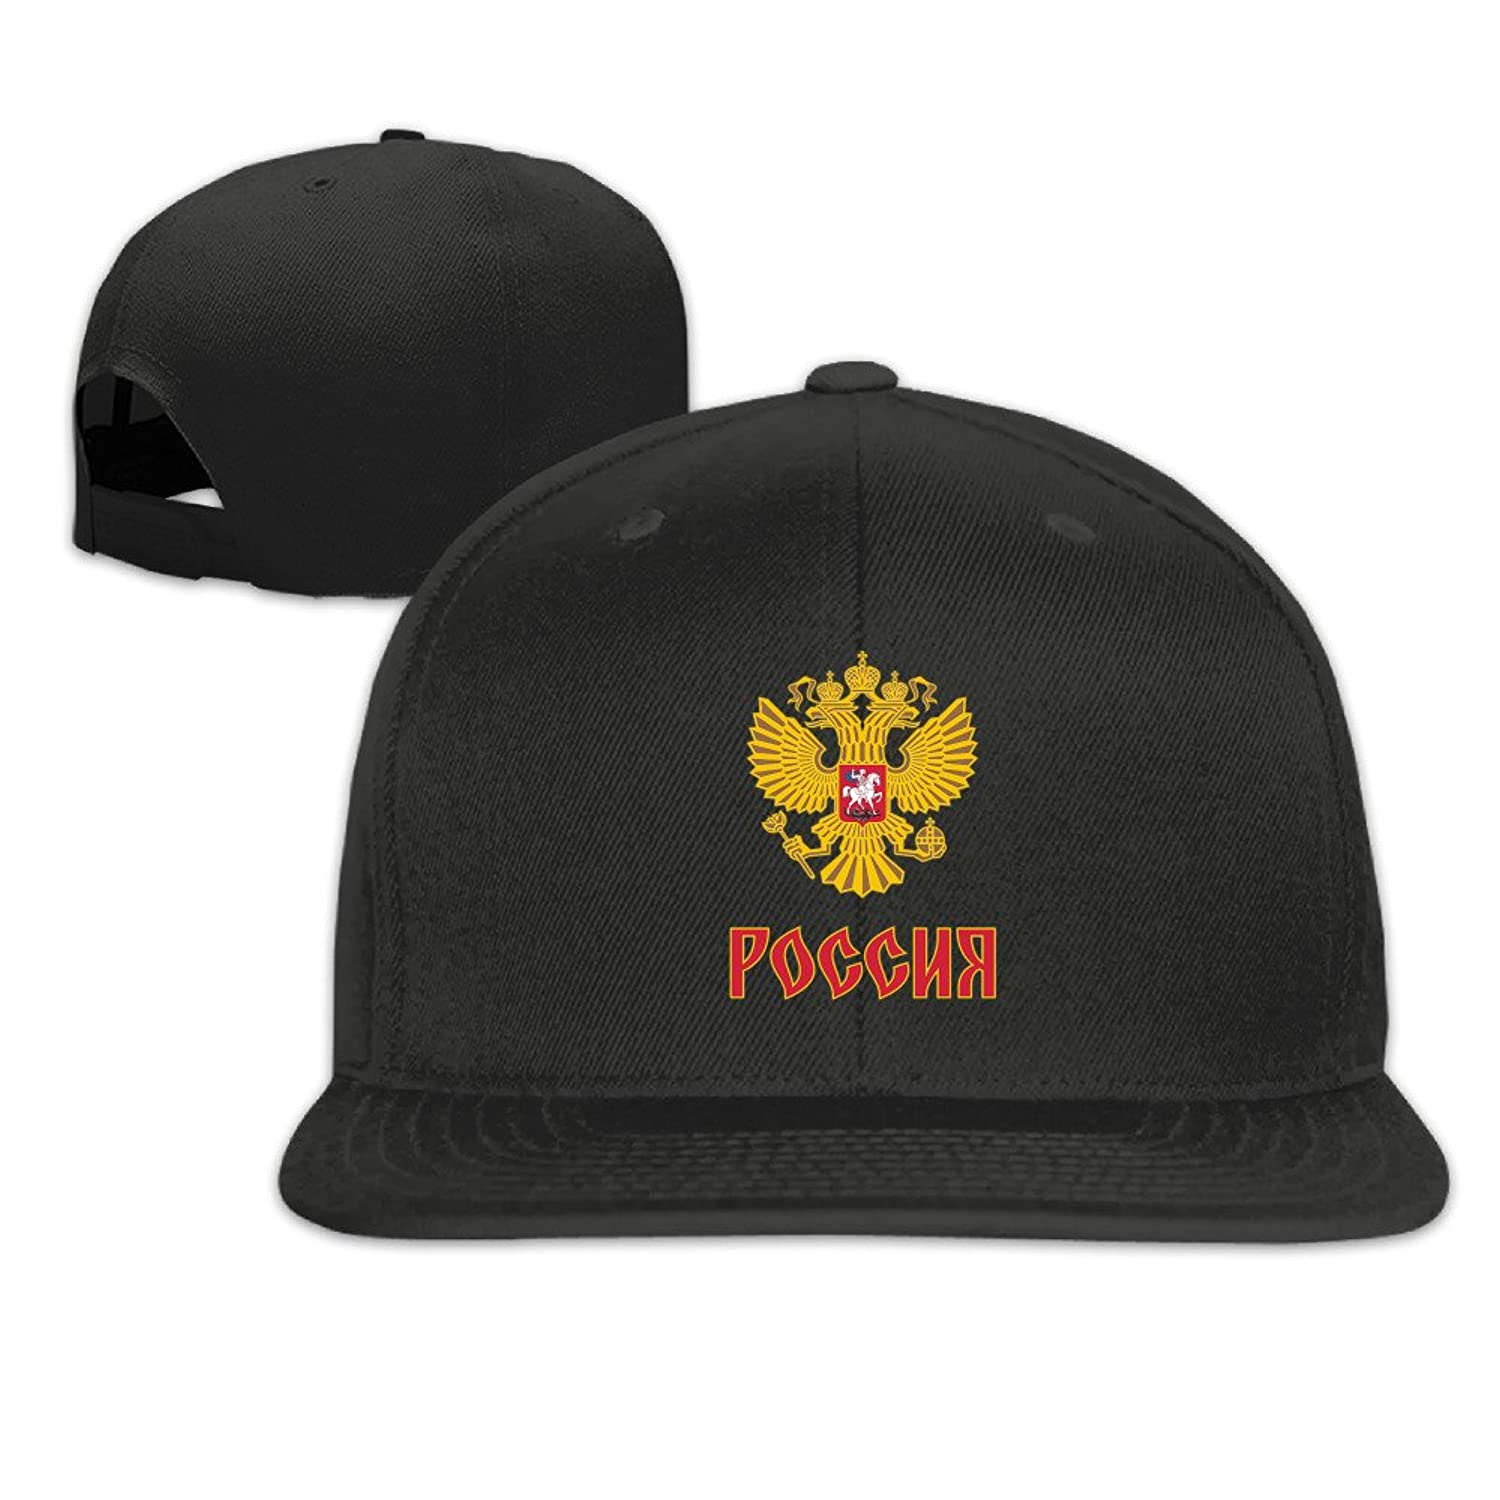 Iruds Team Russia 2016 World Cup Of Hockey Snapback Flat Baseball Cap&Hat For Unisex